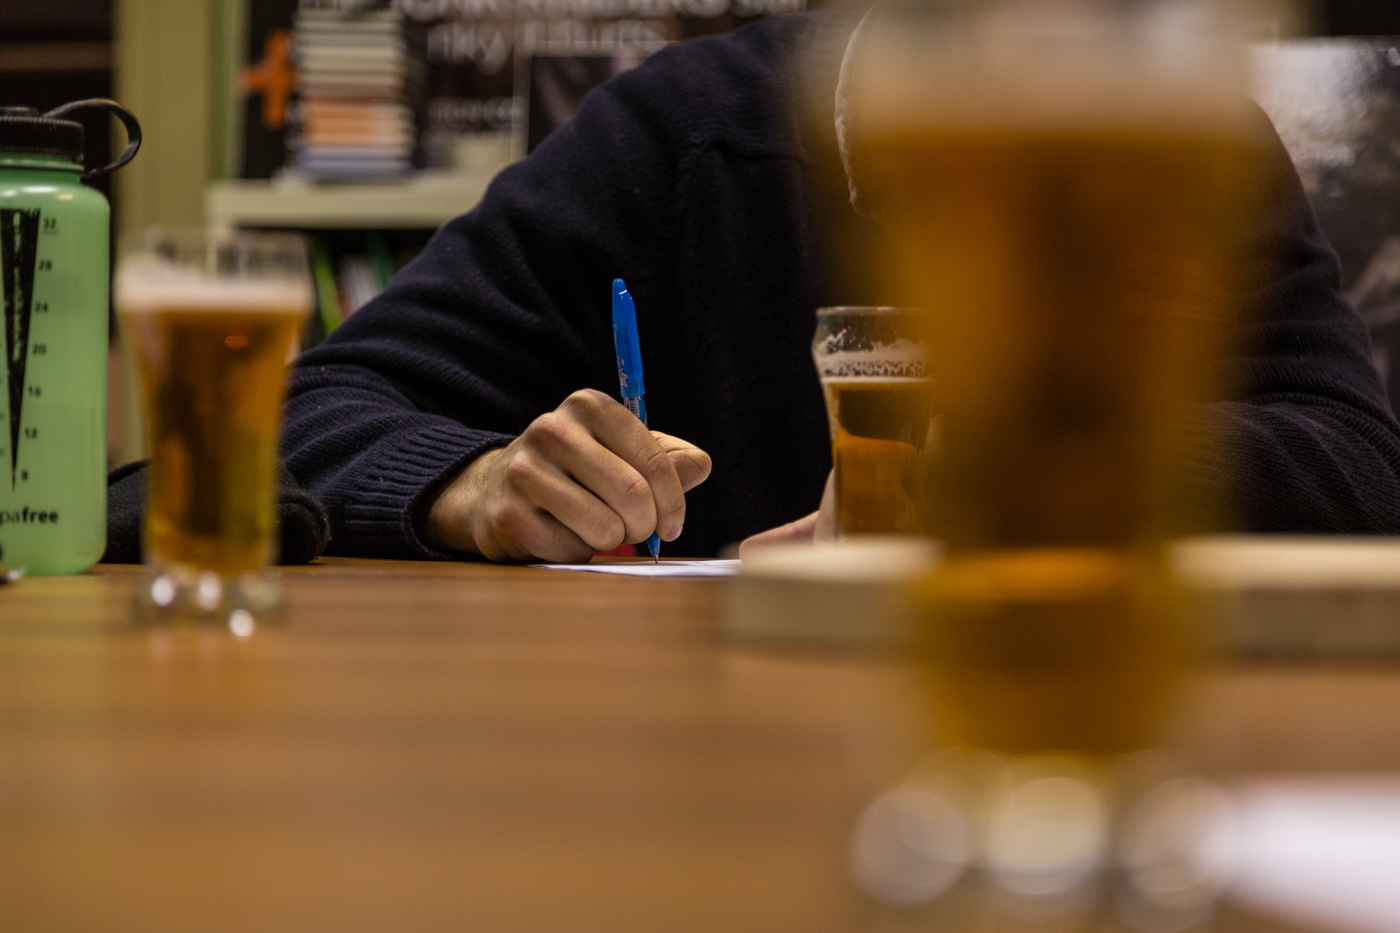 """I don't care what other people think about beer"" and Other Things Said at a Beer Tasting"